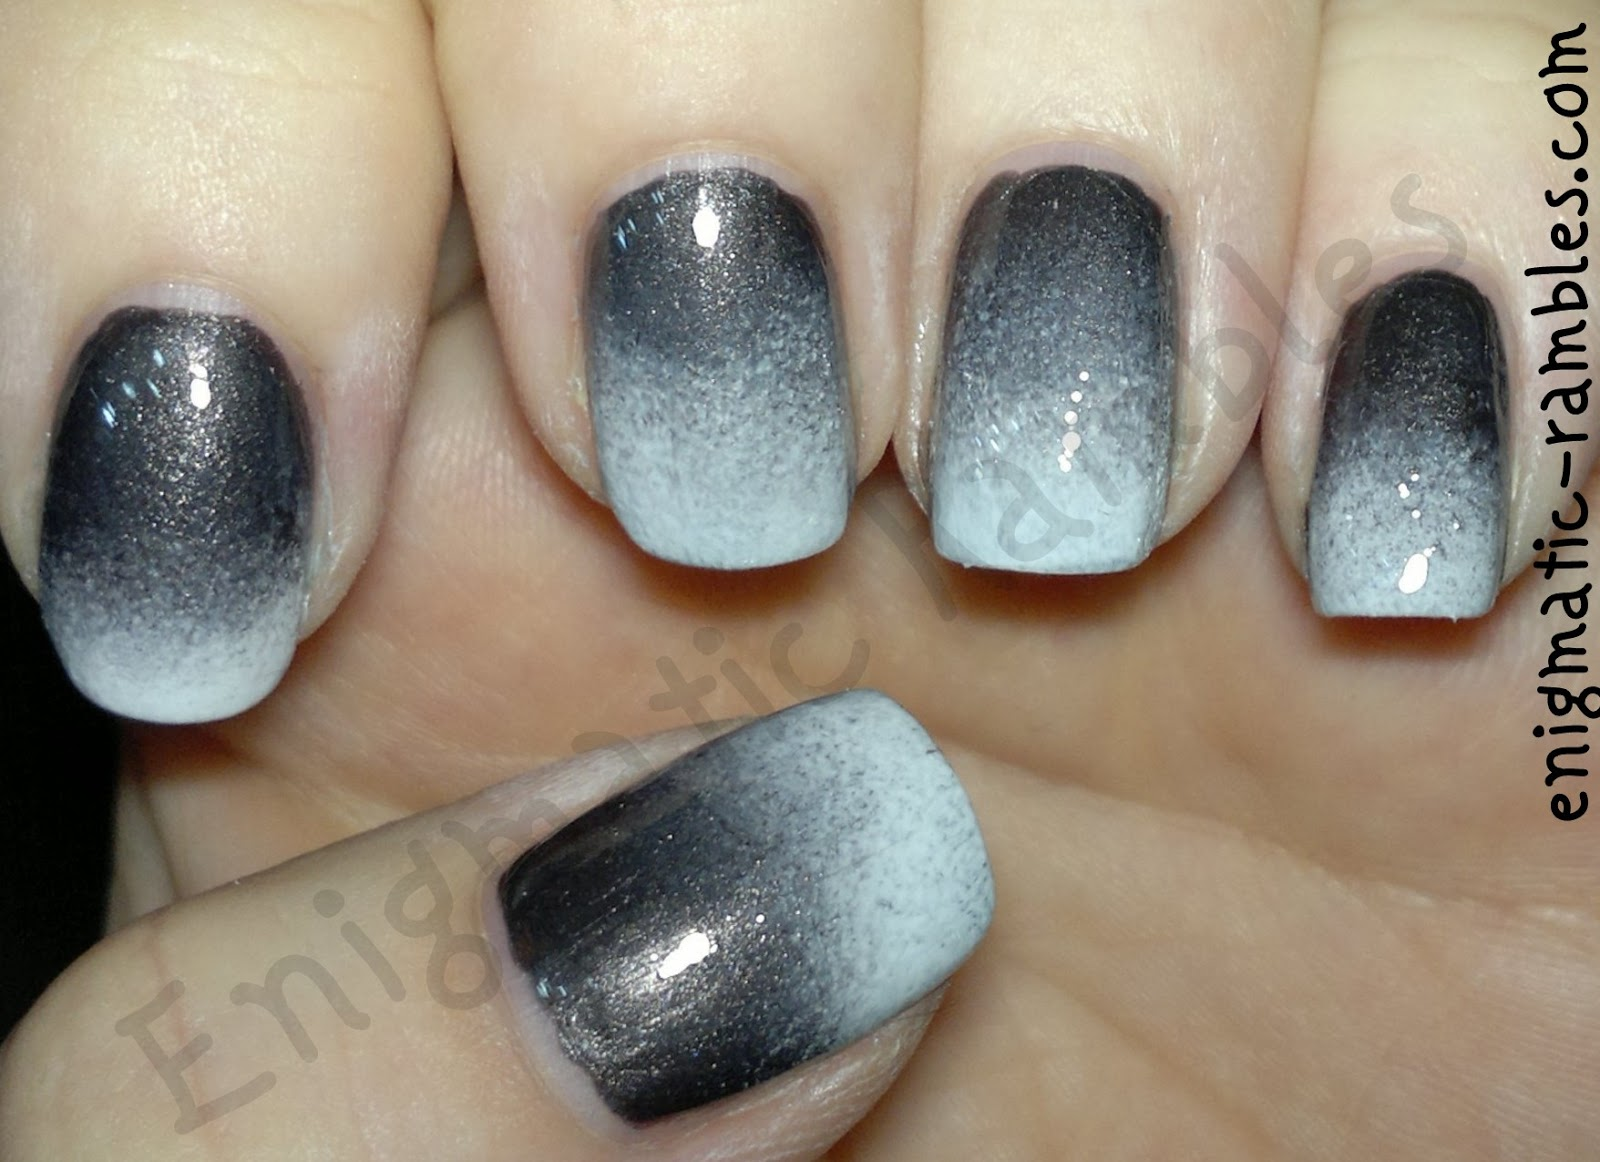 grey-white-gradient-nails-nail-art-sponge-revlon-steel-her-heart-sally-hansen-lavender-cloud